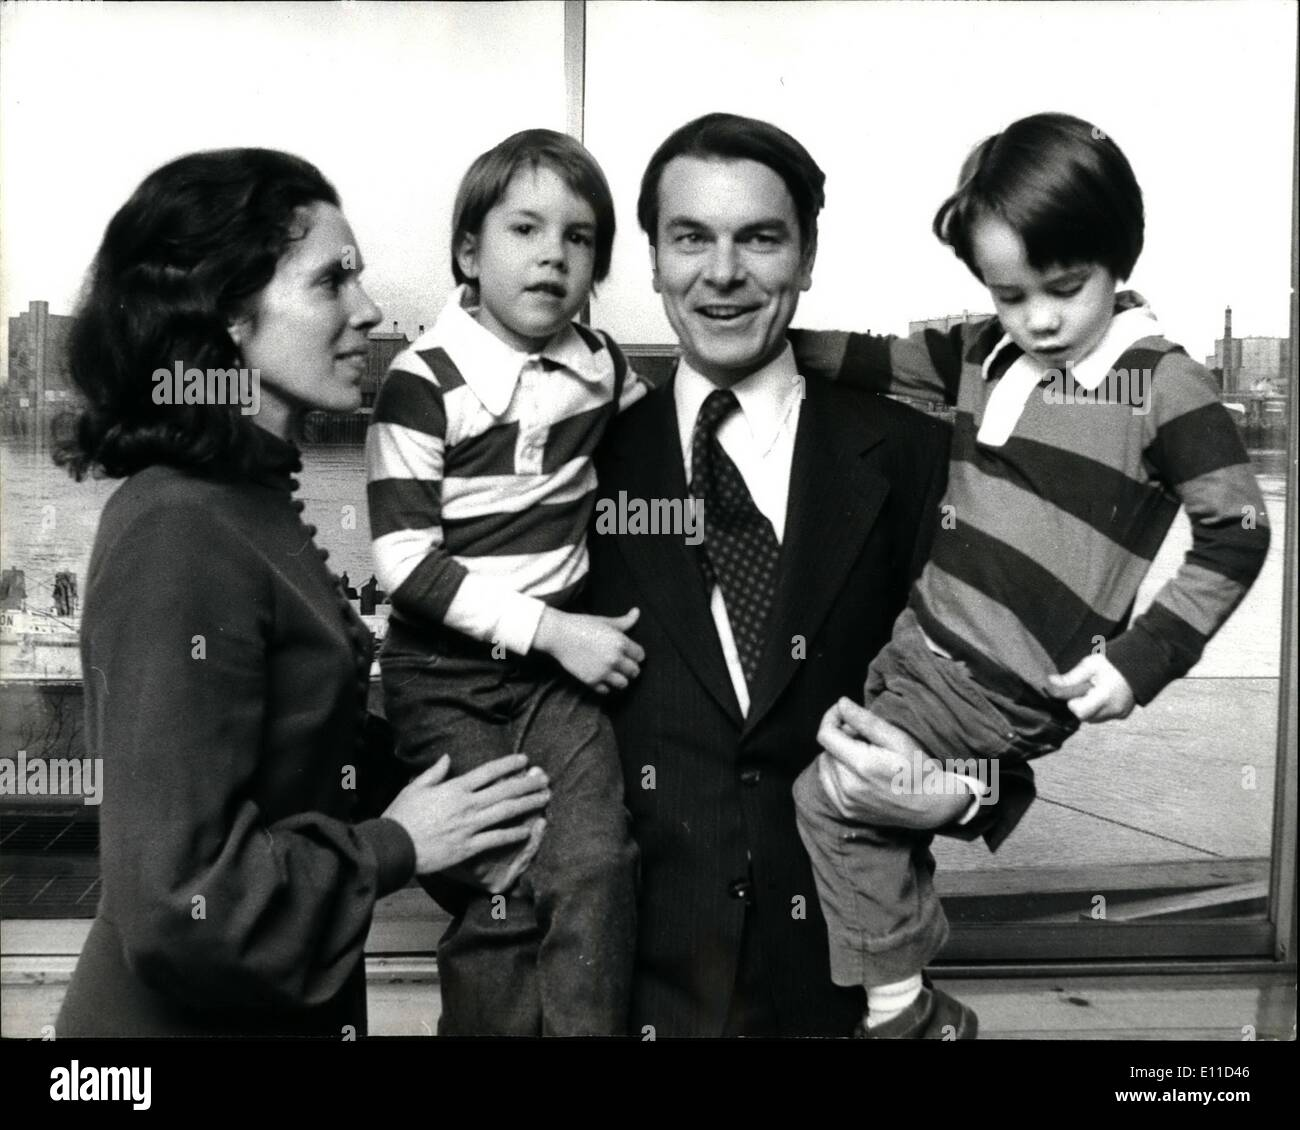 Feb. 02, 1977 - Dr. David Owen The New Foreign Secretary And Family At Home: Dr.David Owen, 38, the new Foreign Secretary who took the place of Anthony Cross land who died last week, was at his terraced 18th Century home at Narrow Street,. Limehouse, East London, yesterday with his family to meet the press.Photo Shows Dr,. David Owen with his wife Debbie and two sons Tristan aged 4, left, and Gareyth aged 4 at their Lime house home yesterday. - Stock Image